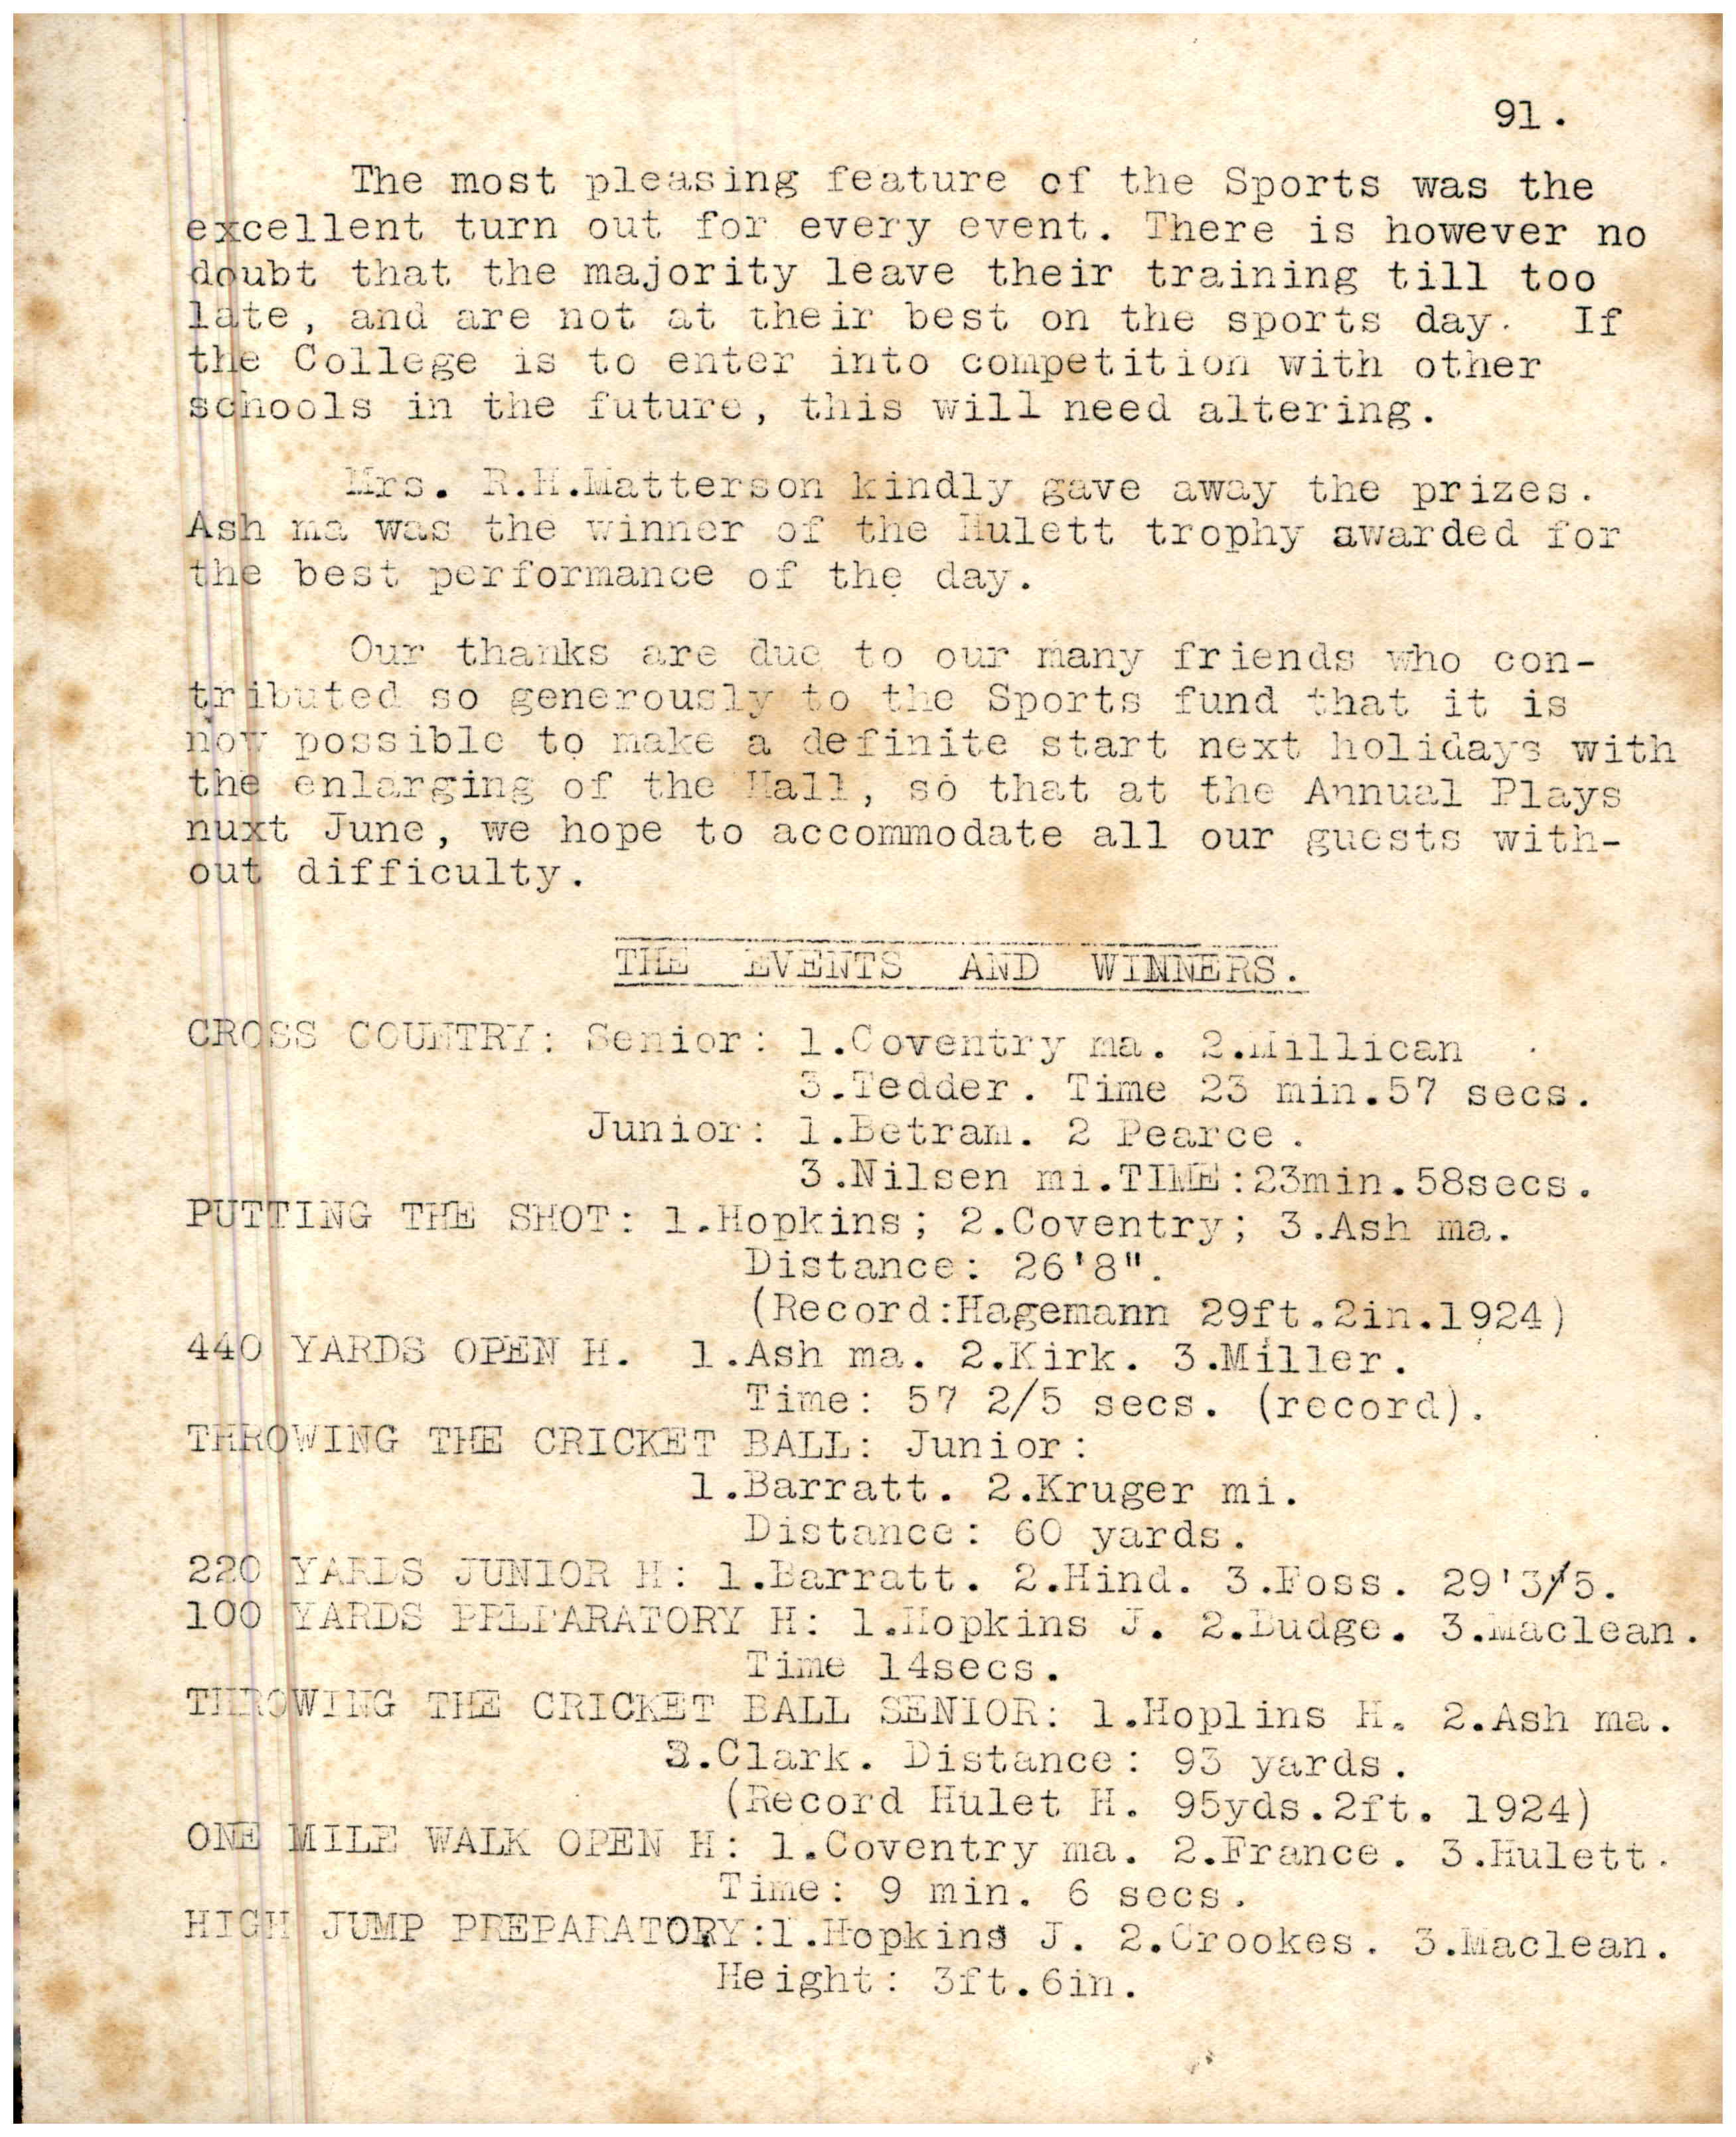 1927 - All Documents